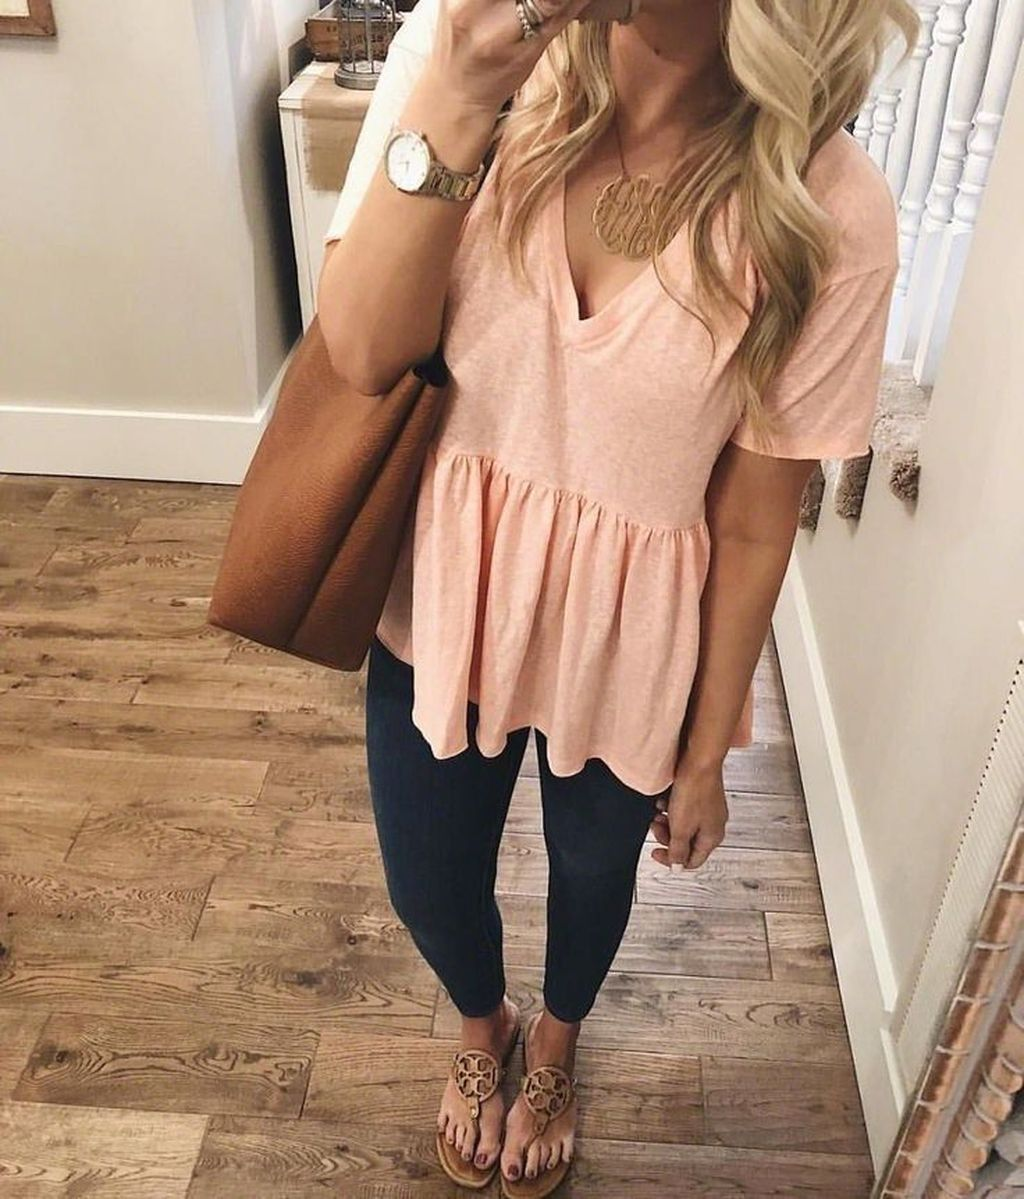 67cc87b3c2 Awesome 20+ Awesome Everyday Casual Outfit Ideas. More at http    trendsoutfits